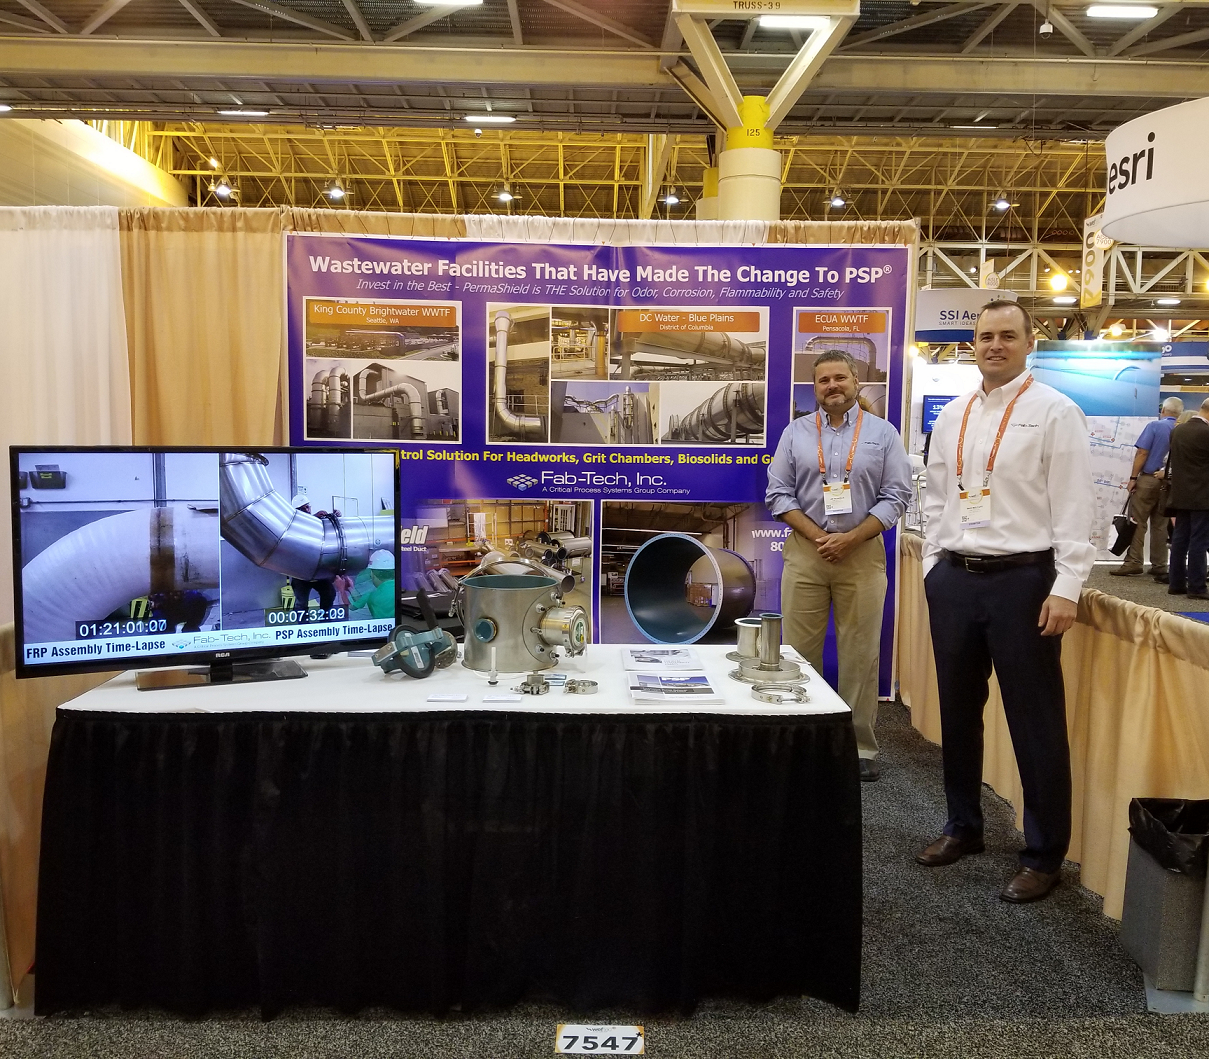 PSP on display at WEFTEC 2018